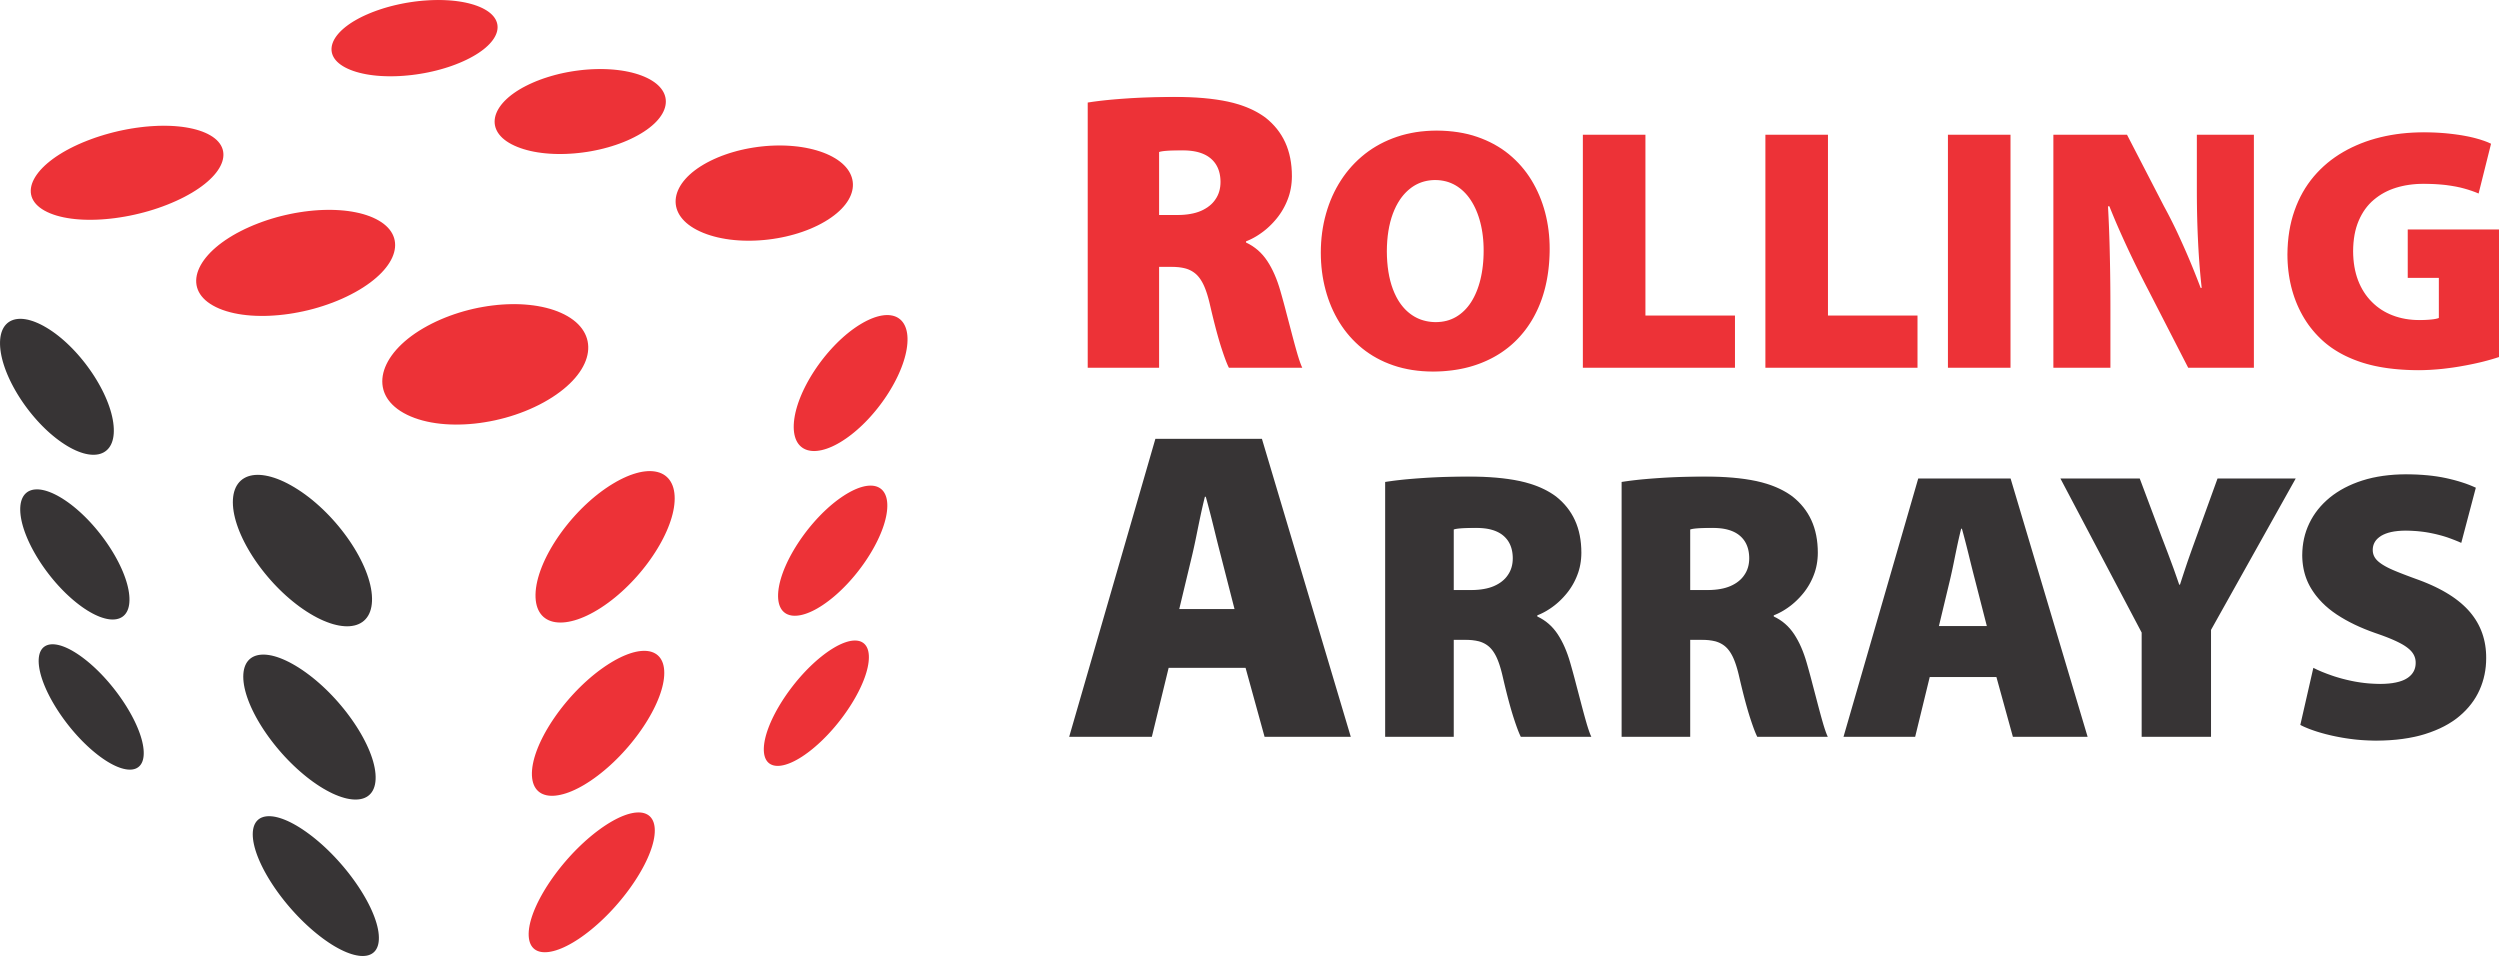 Rolling Arrays Consulting Pte. Ltd.